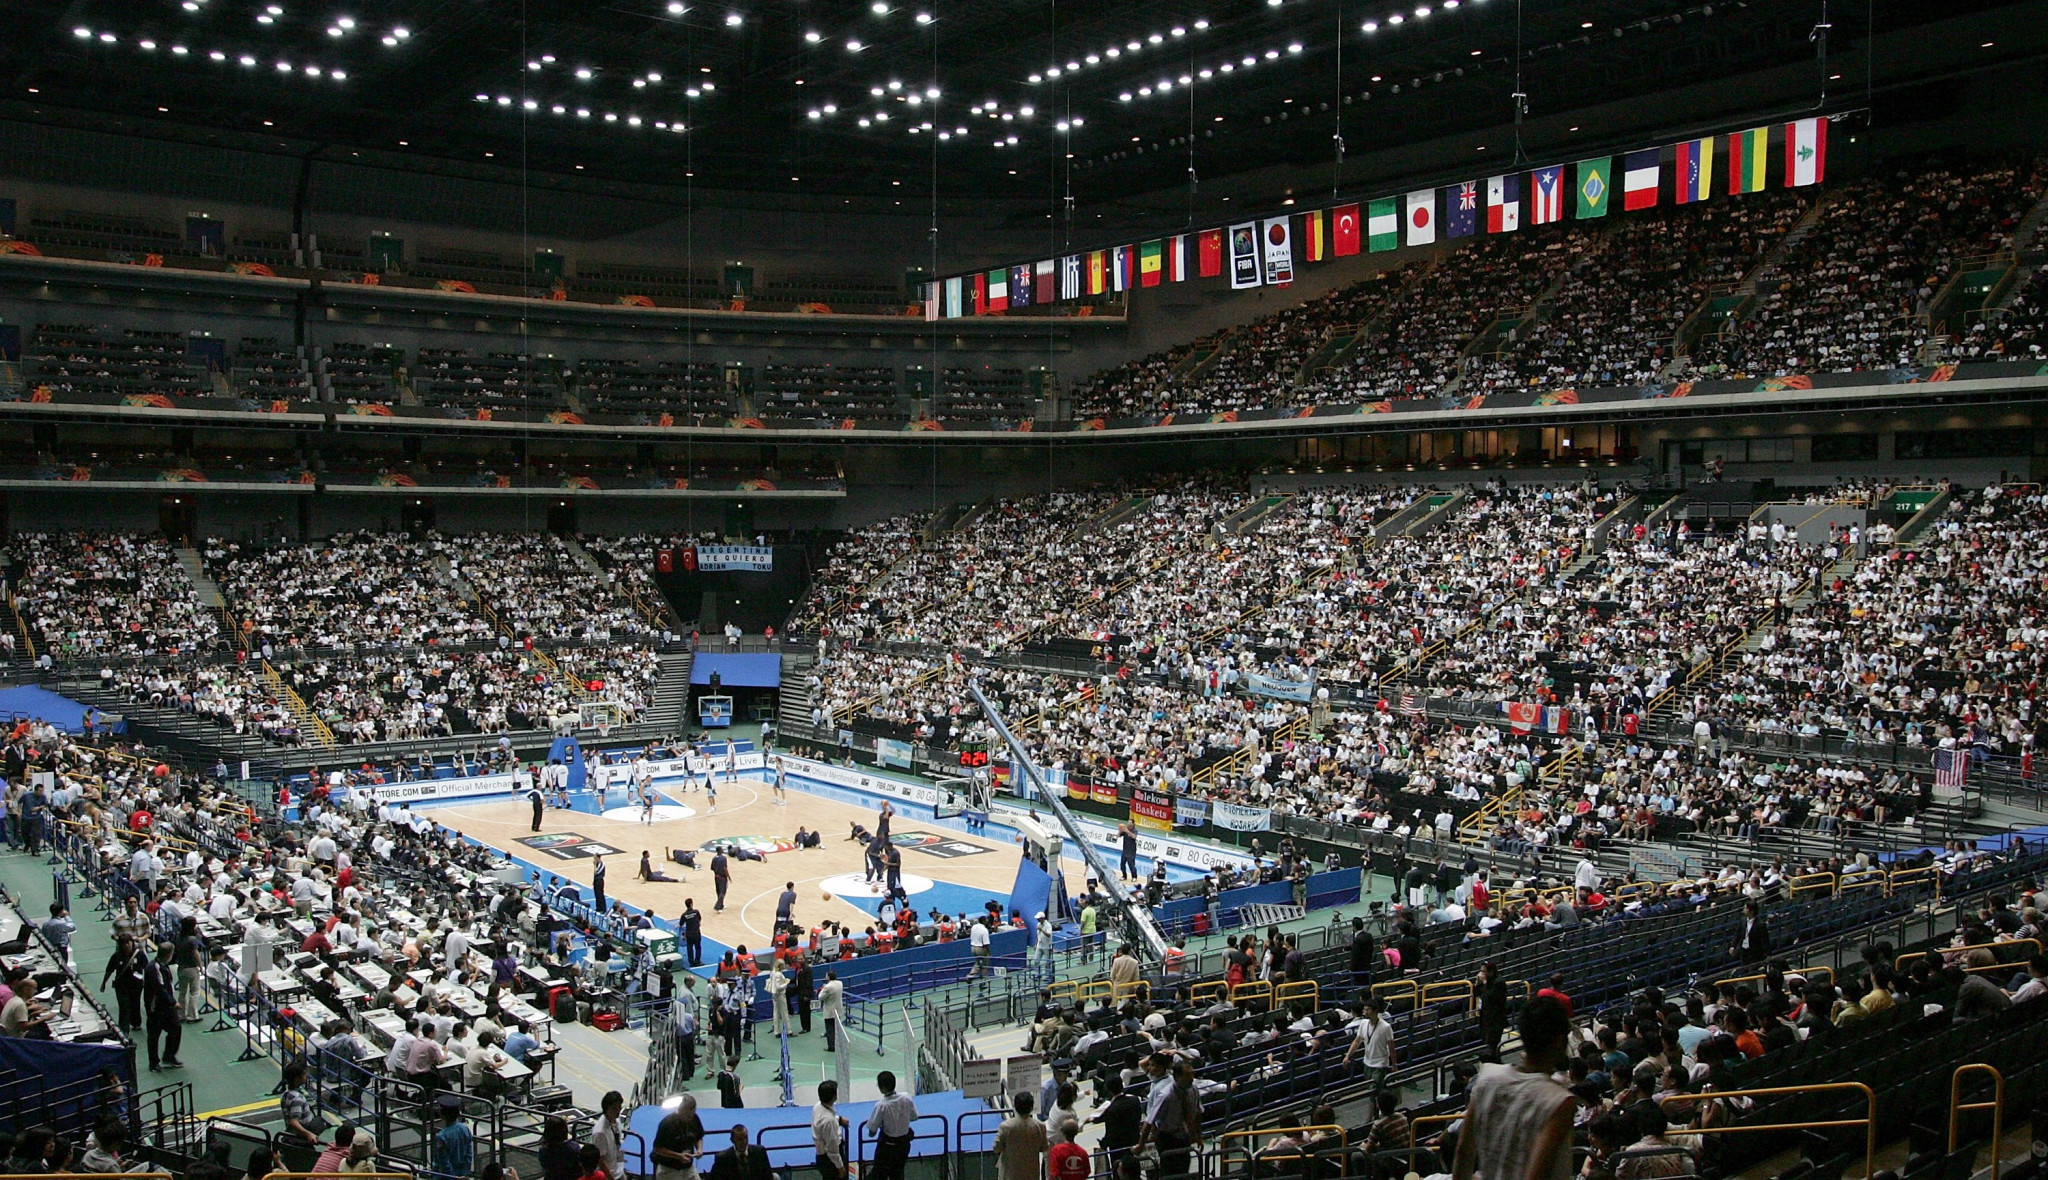 Saitama Super Arena under microscope at Tokyo 2020 basketball test event